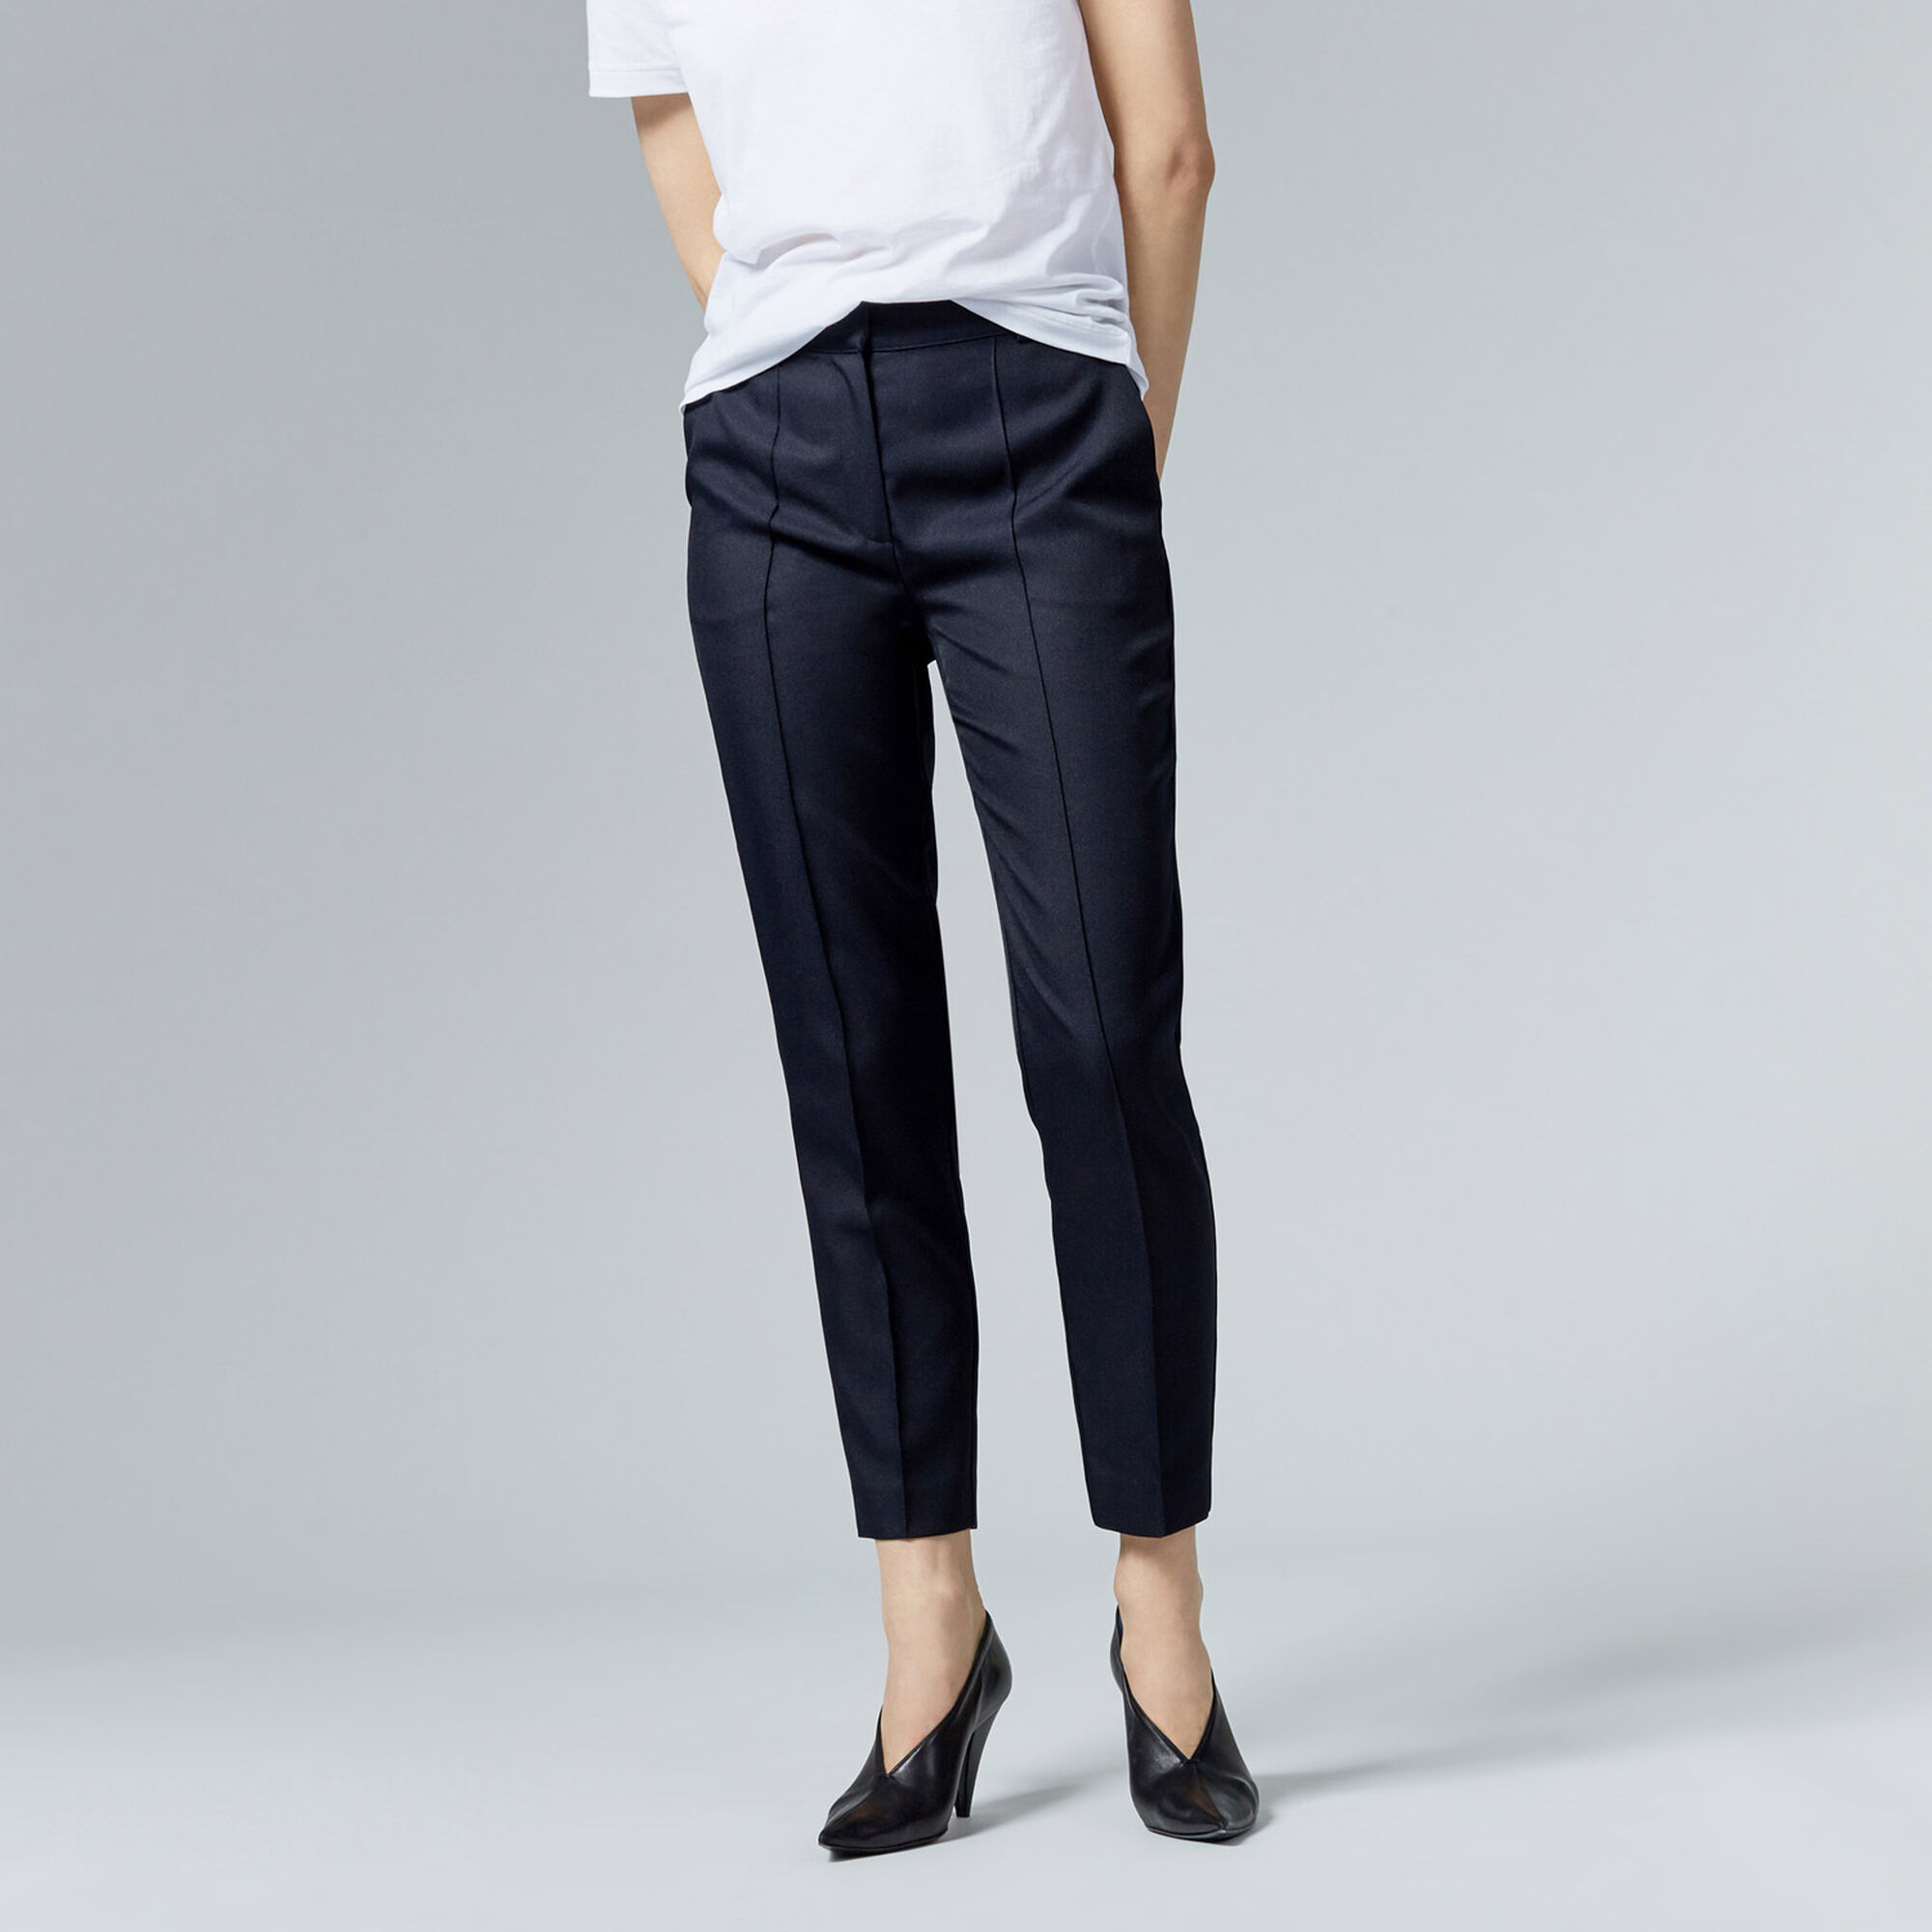 Warehouse, STITCH SEAM TROUSER Navy 1